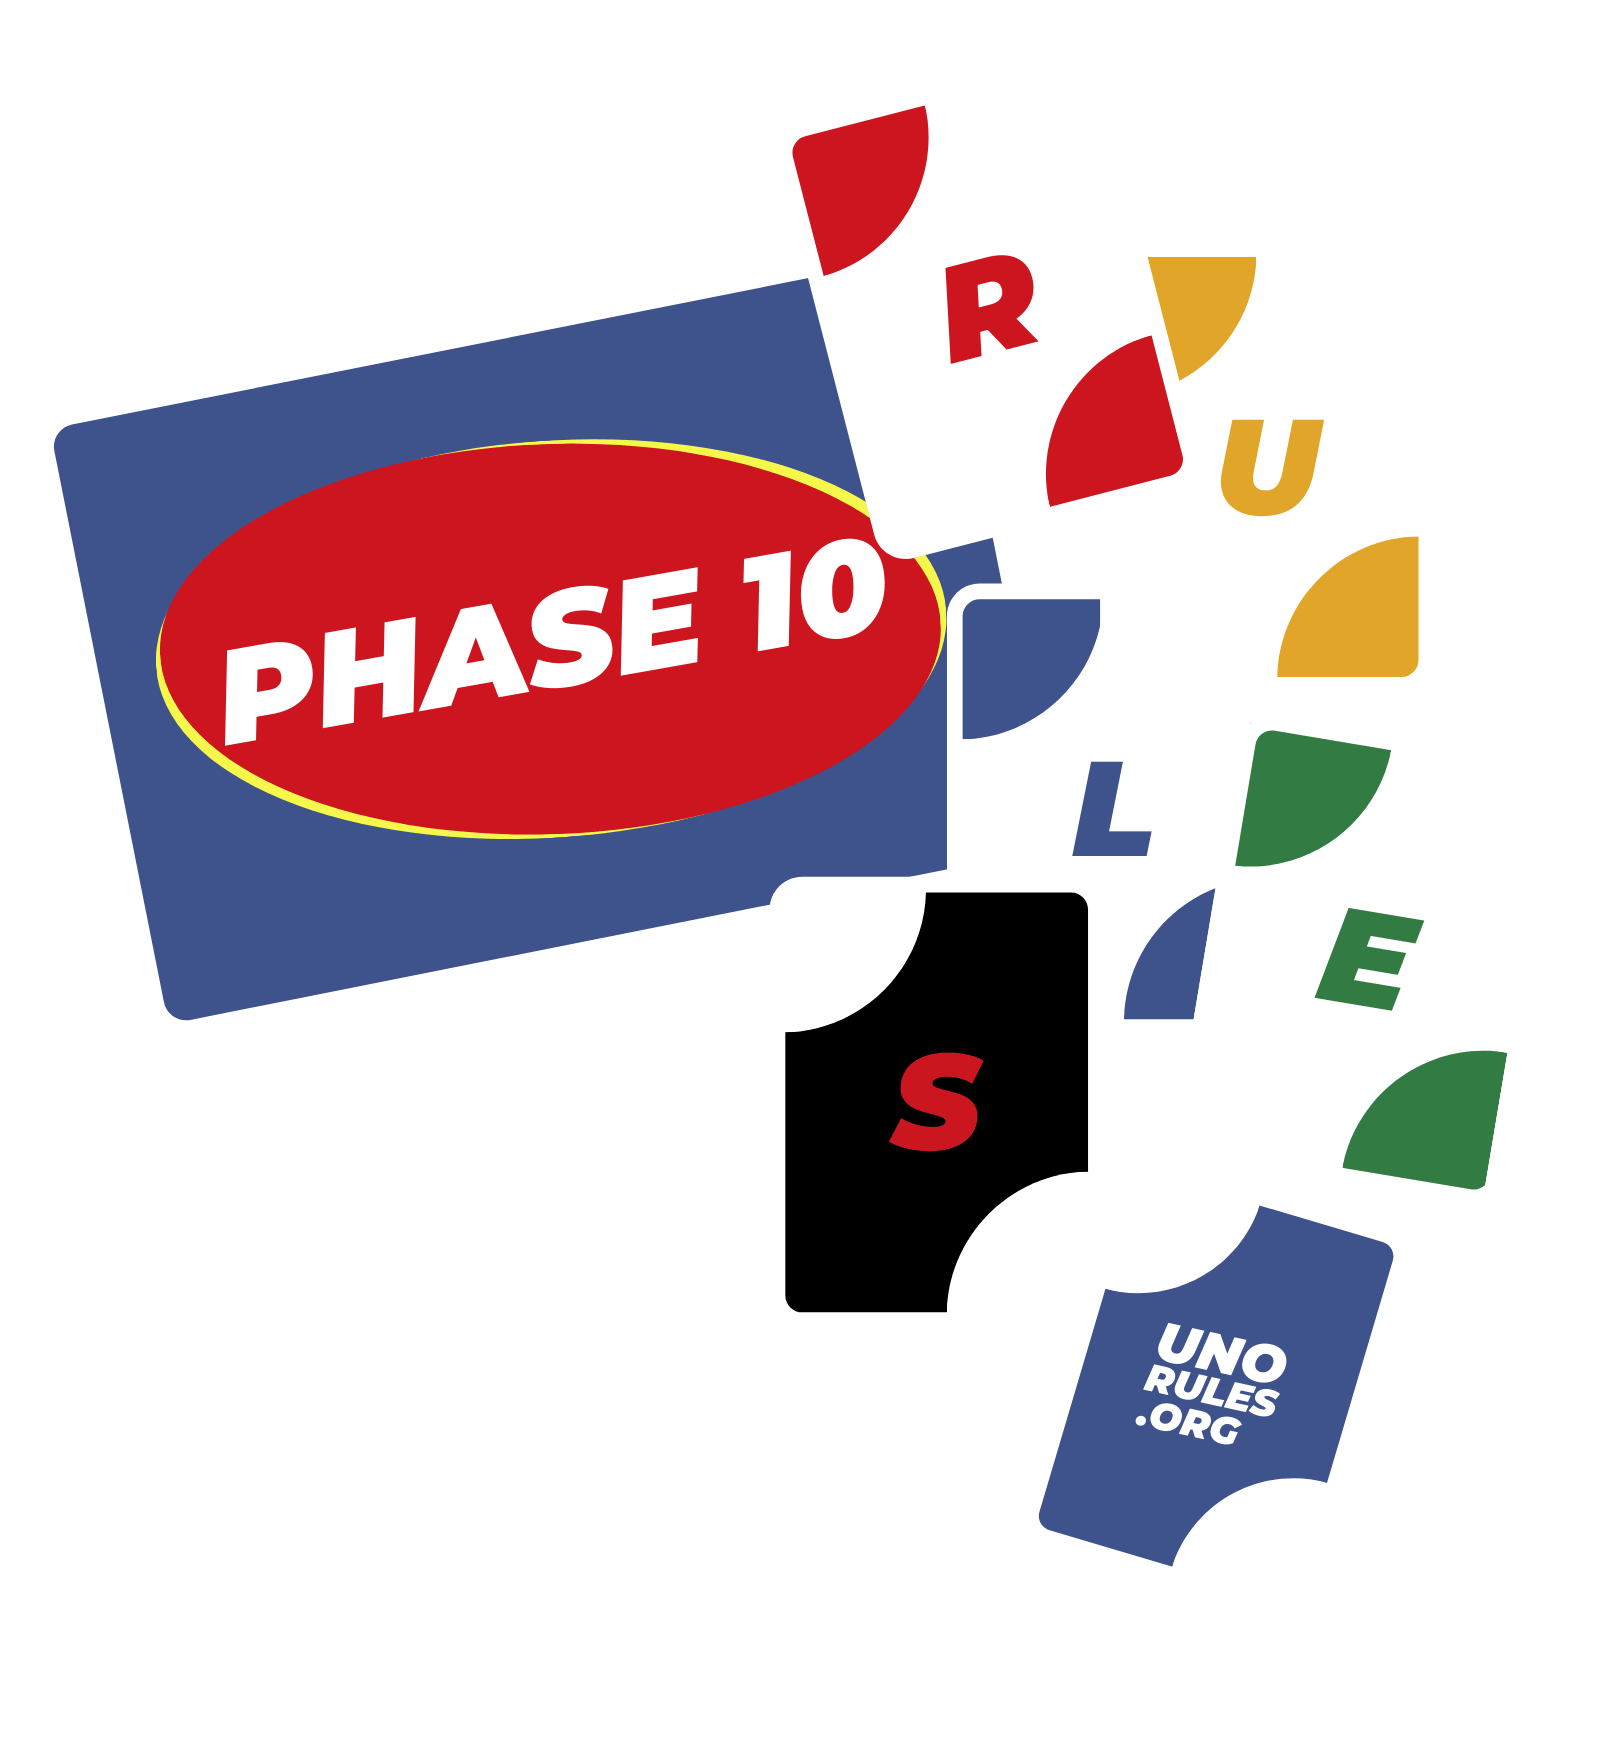 Phase 10 rules - unorules.org